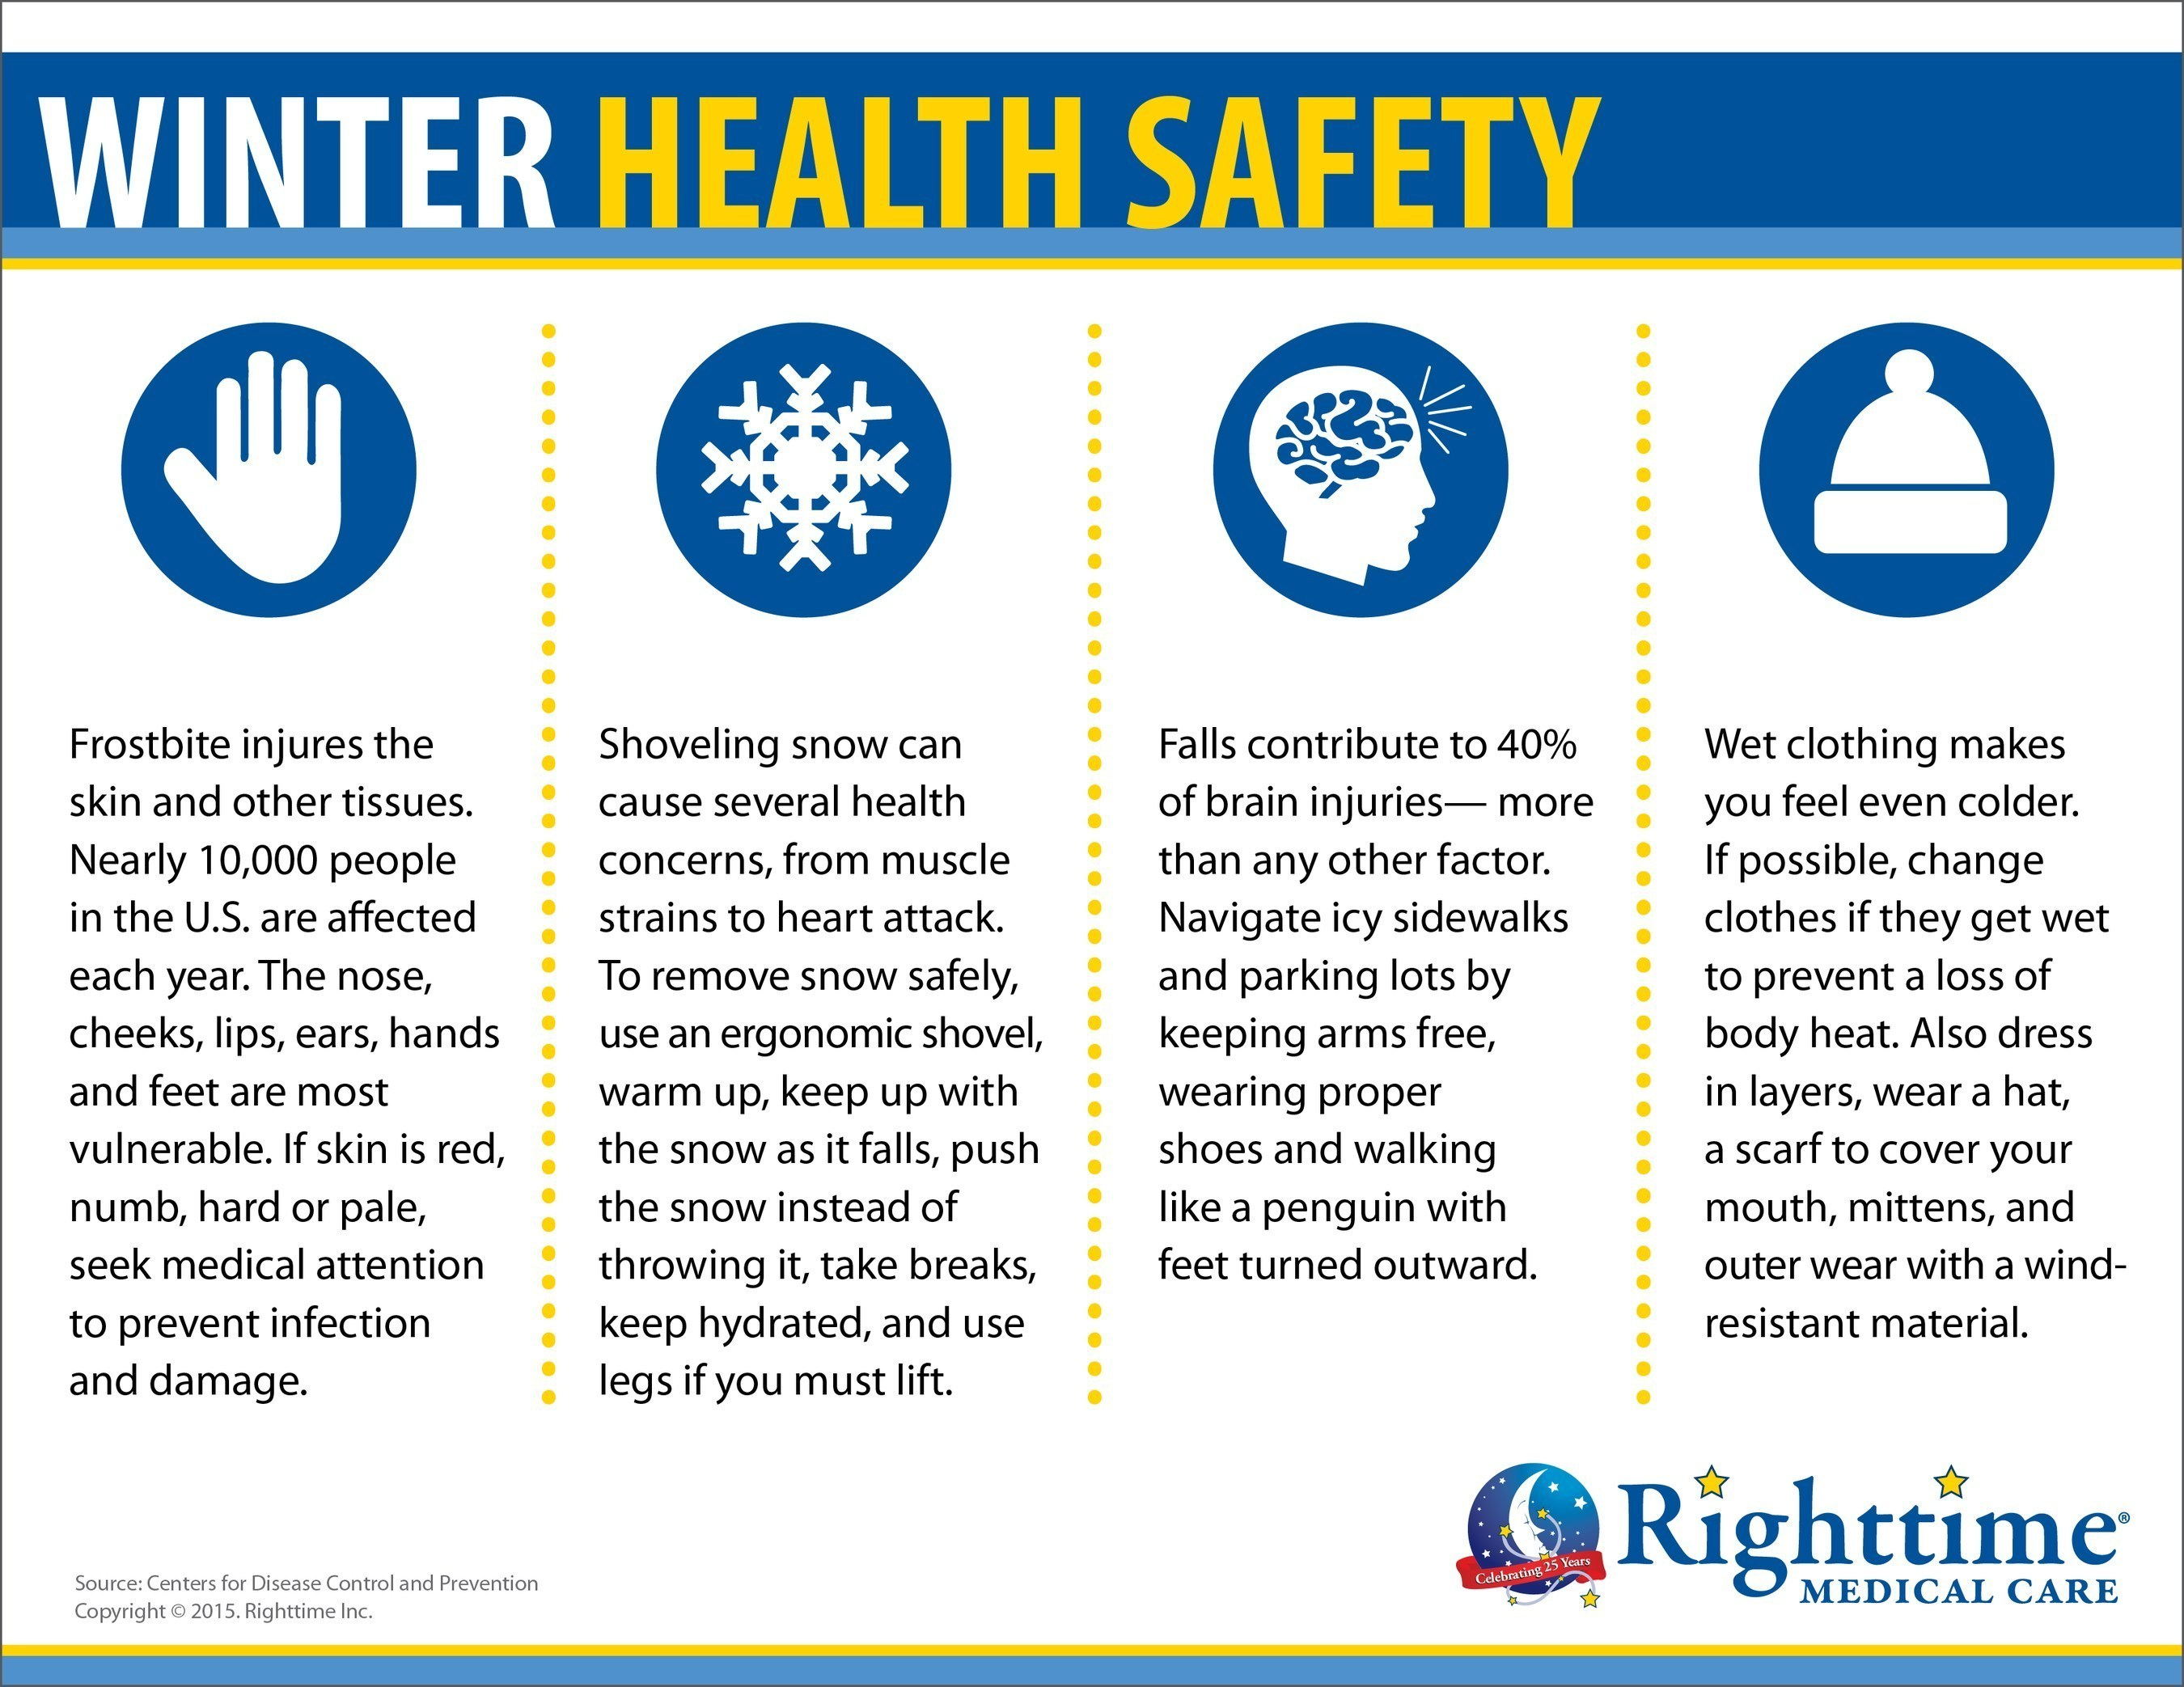 Righttime Medical Care Offers Winter Safety Tips